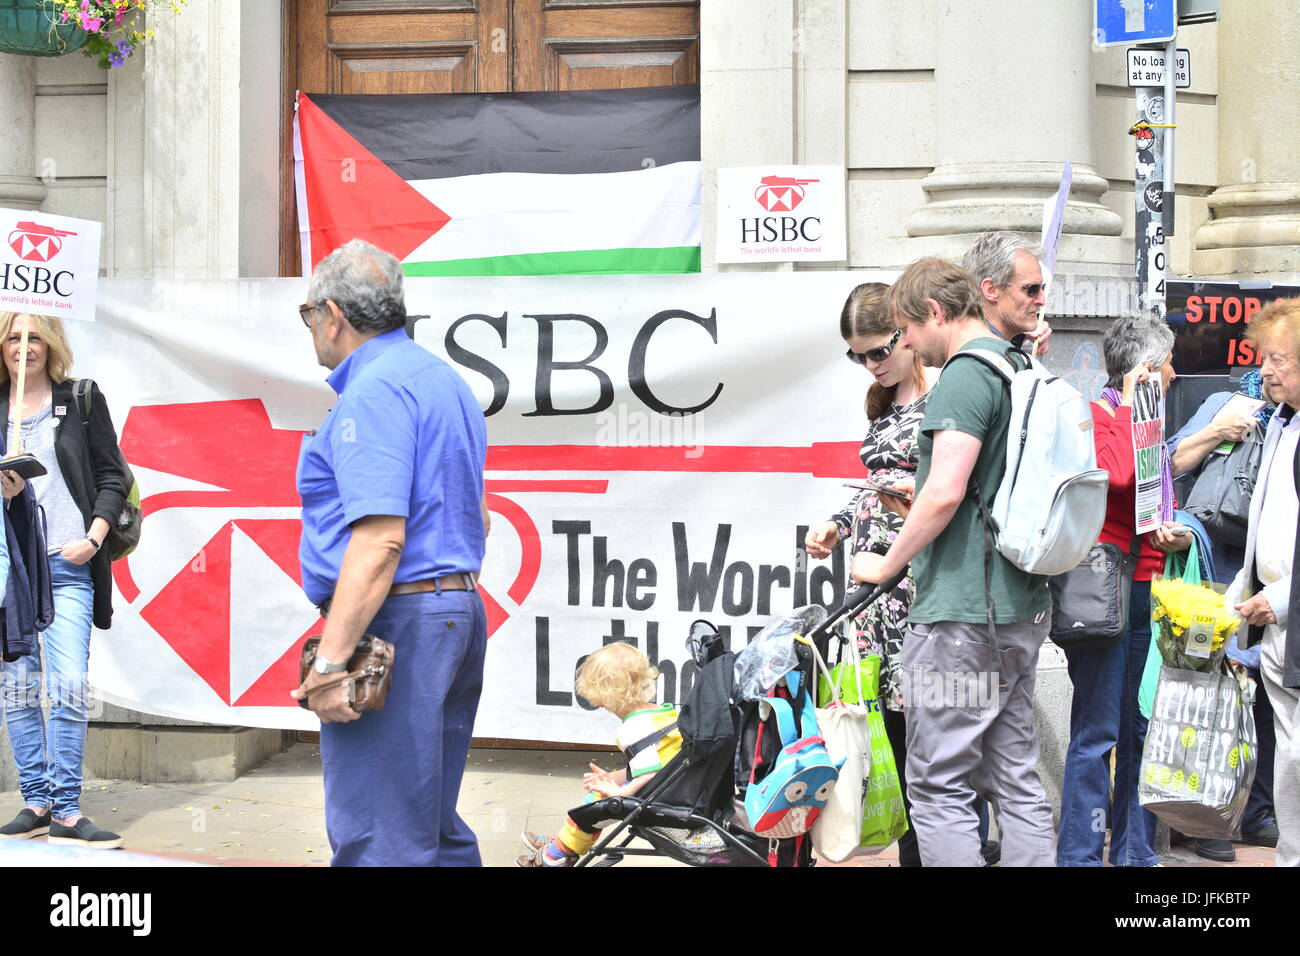 Protesters outside HSBC bank in protesting against arming Israel in Brighton, East Sussex, England, UK. - Stock Image